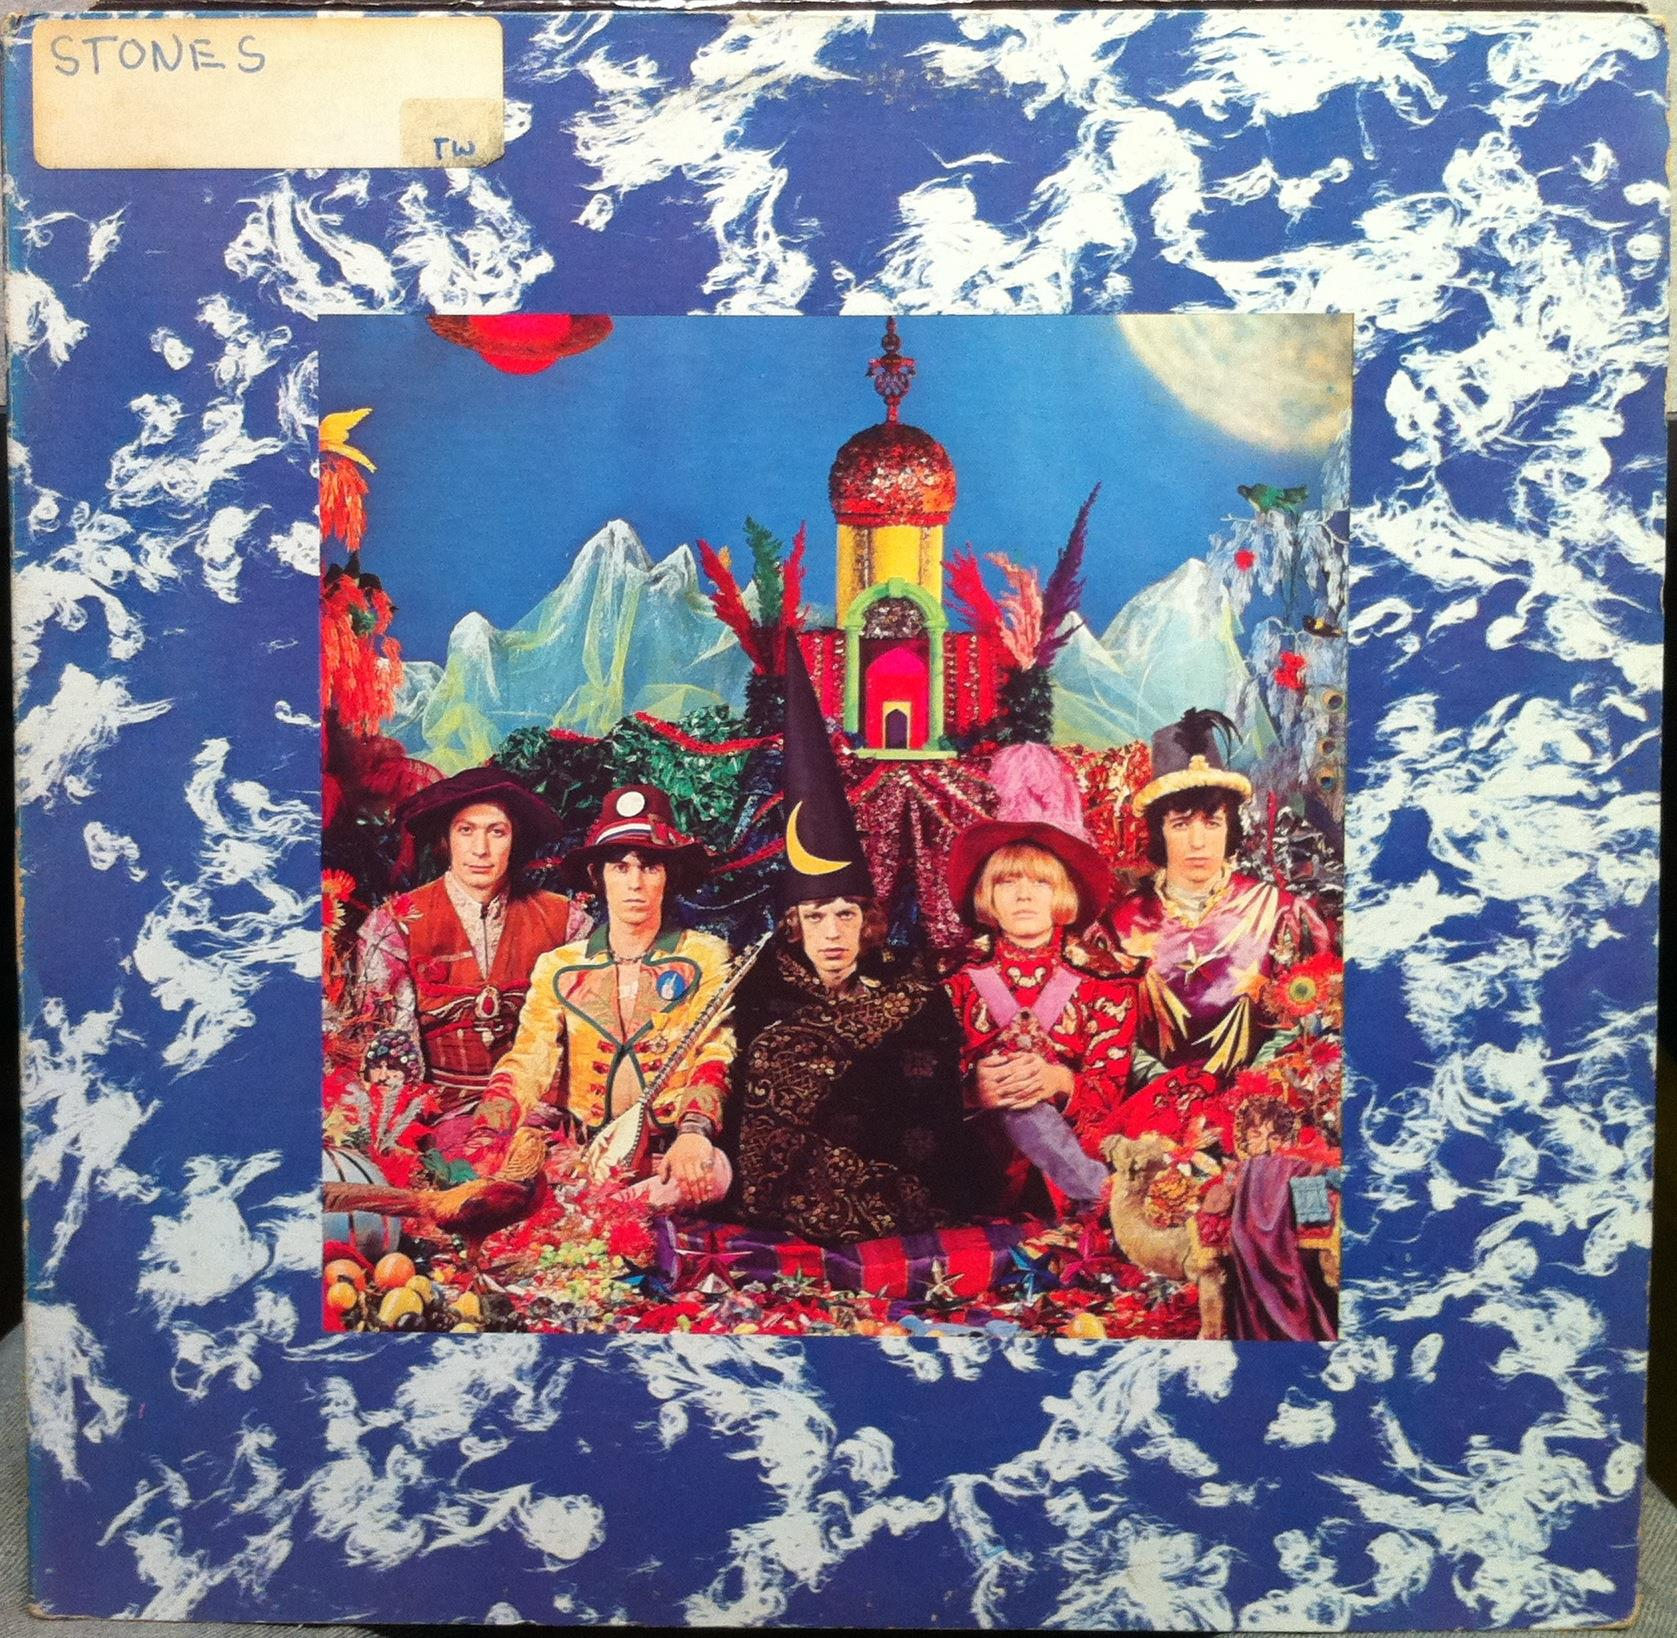 Rolling Stones - The Rolling Stones Their Satanic Majesties Request Lp Vg Nps-2 Stereo Vinyl 1967 (their Satanic Maje